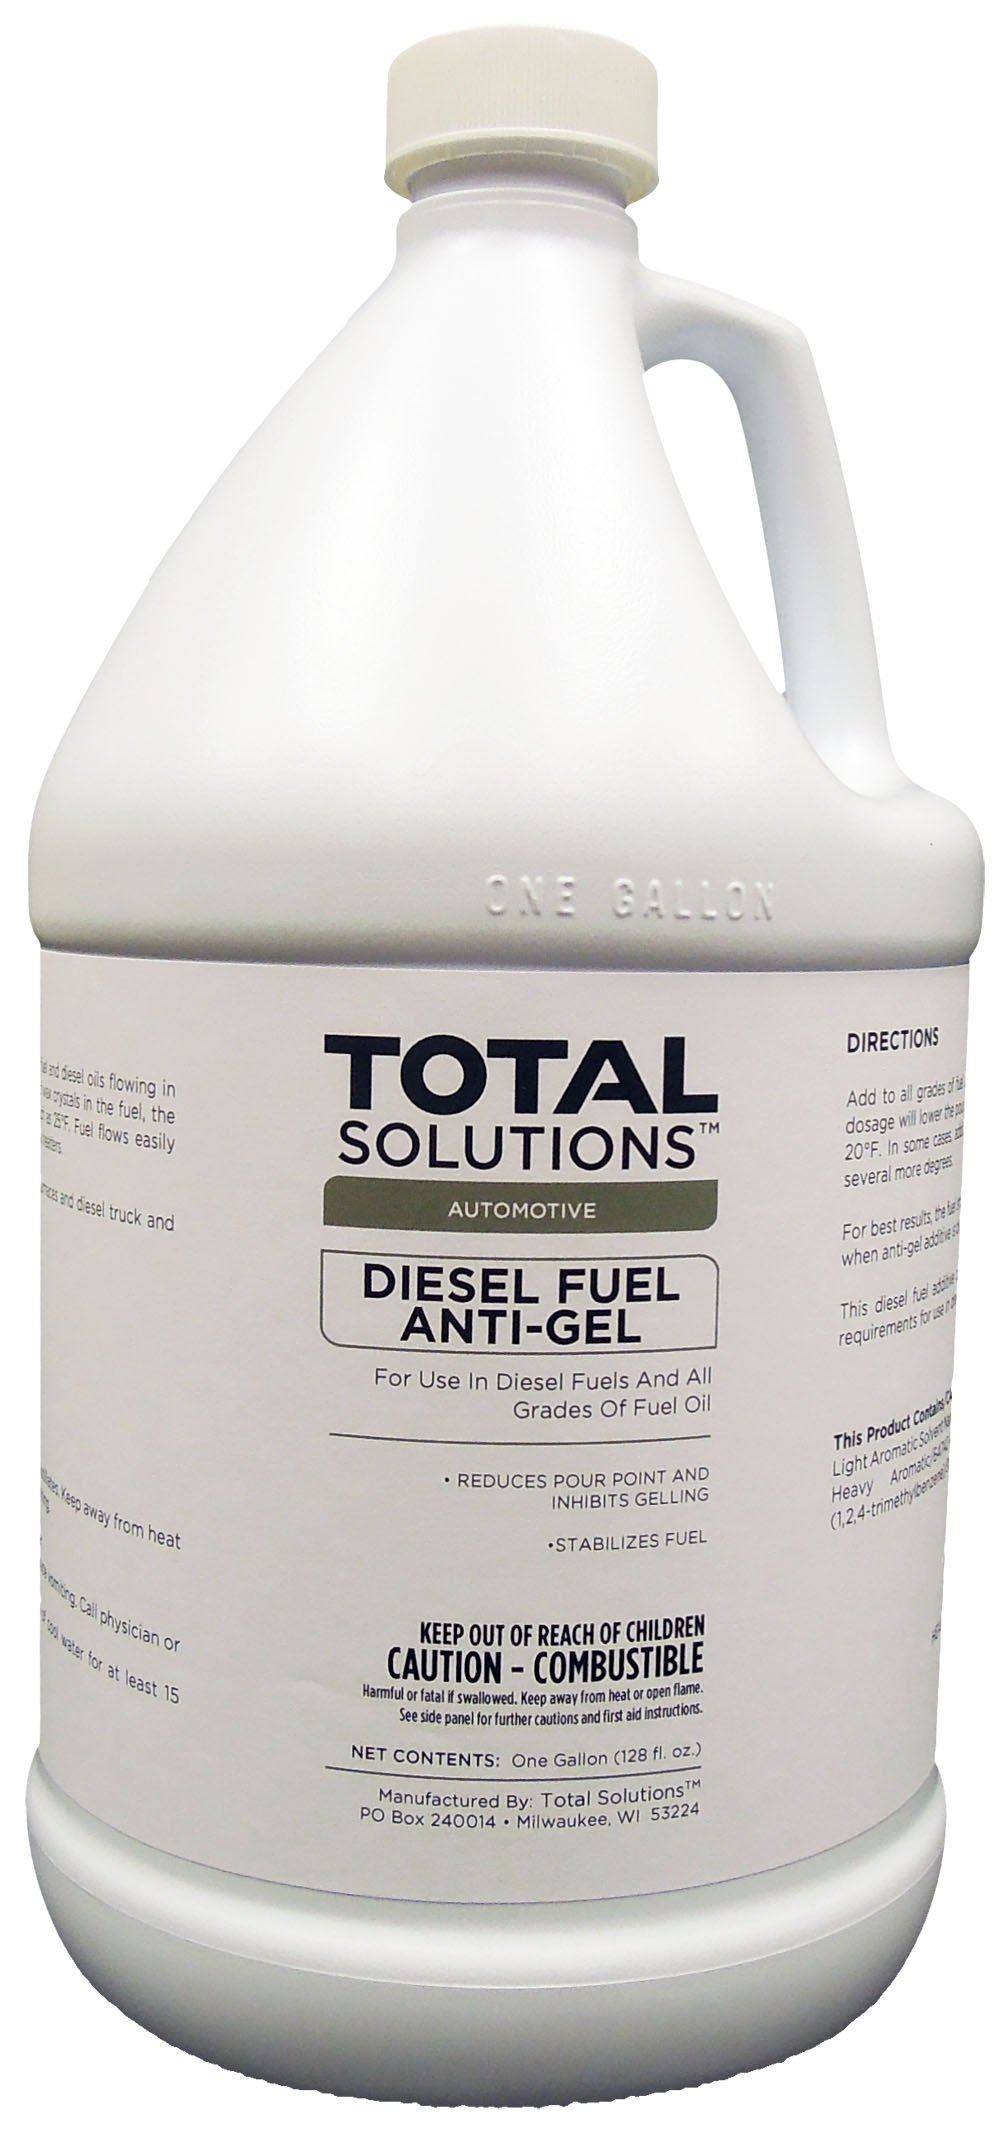 Diesel Fuel Anti-Gel, Concentrated fuel additive - 4 Gallons by EcoClean Solutions